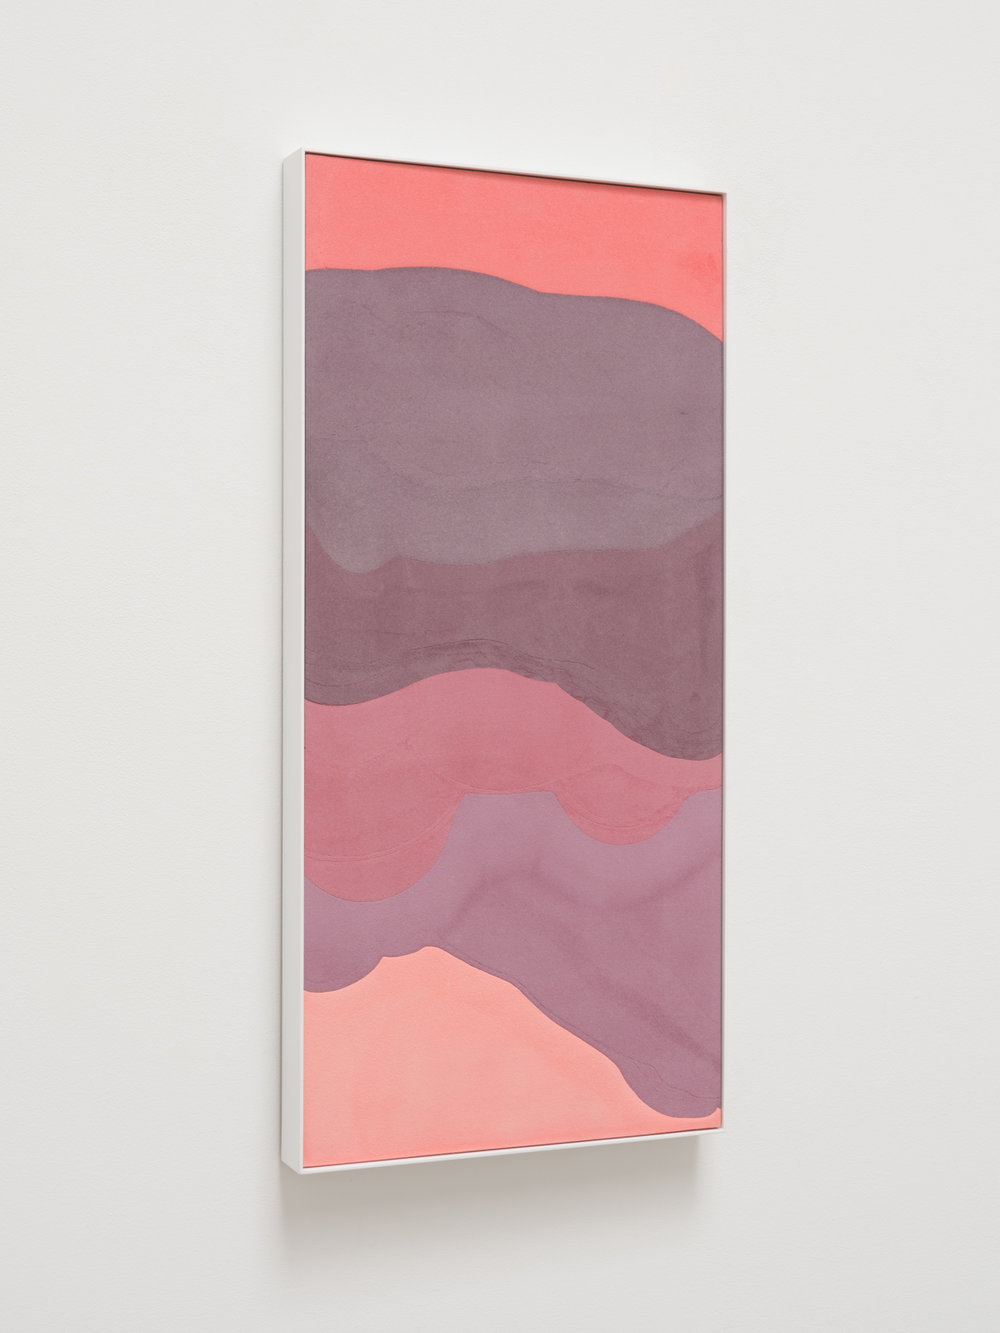 AnthonyPearson  Untitled (Embedment)  2018 Interlock-cotton-embedded pigmented hydrocal in enamel finished aluminum frame 35 3/4h x 17 1/4w x 2d in AP444